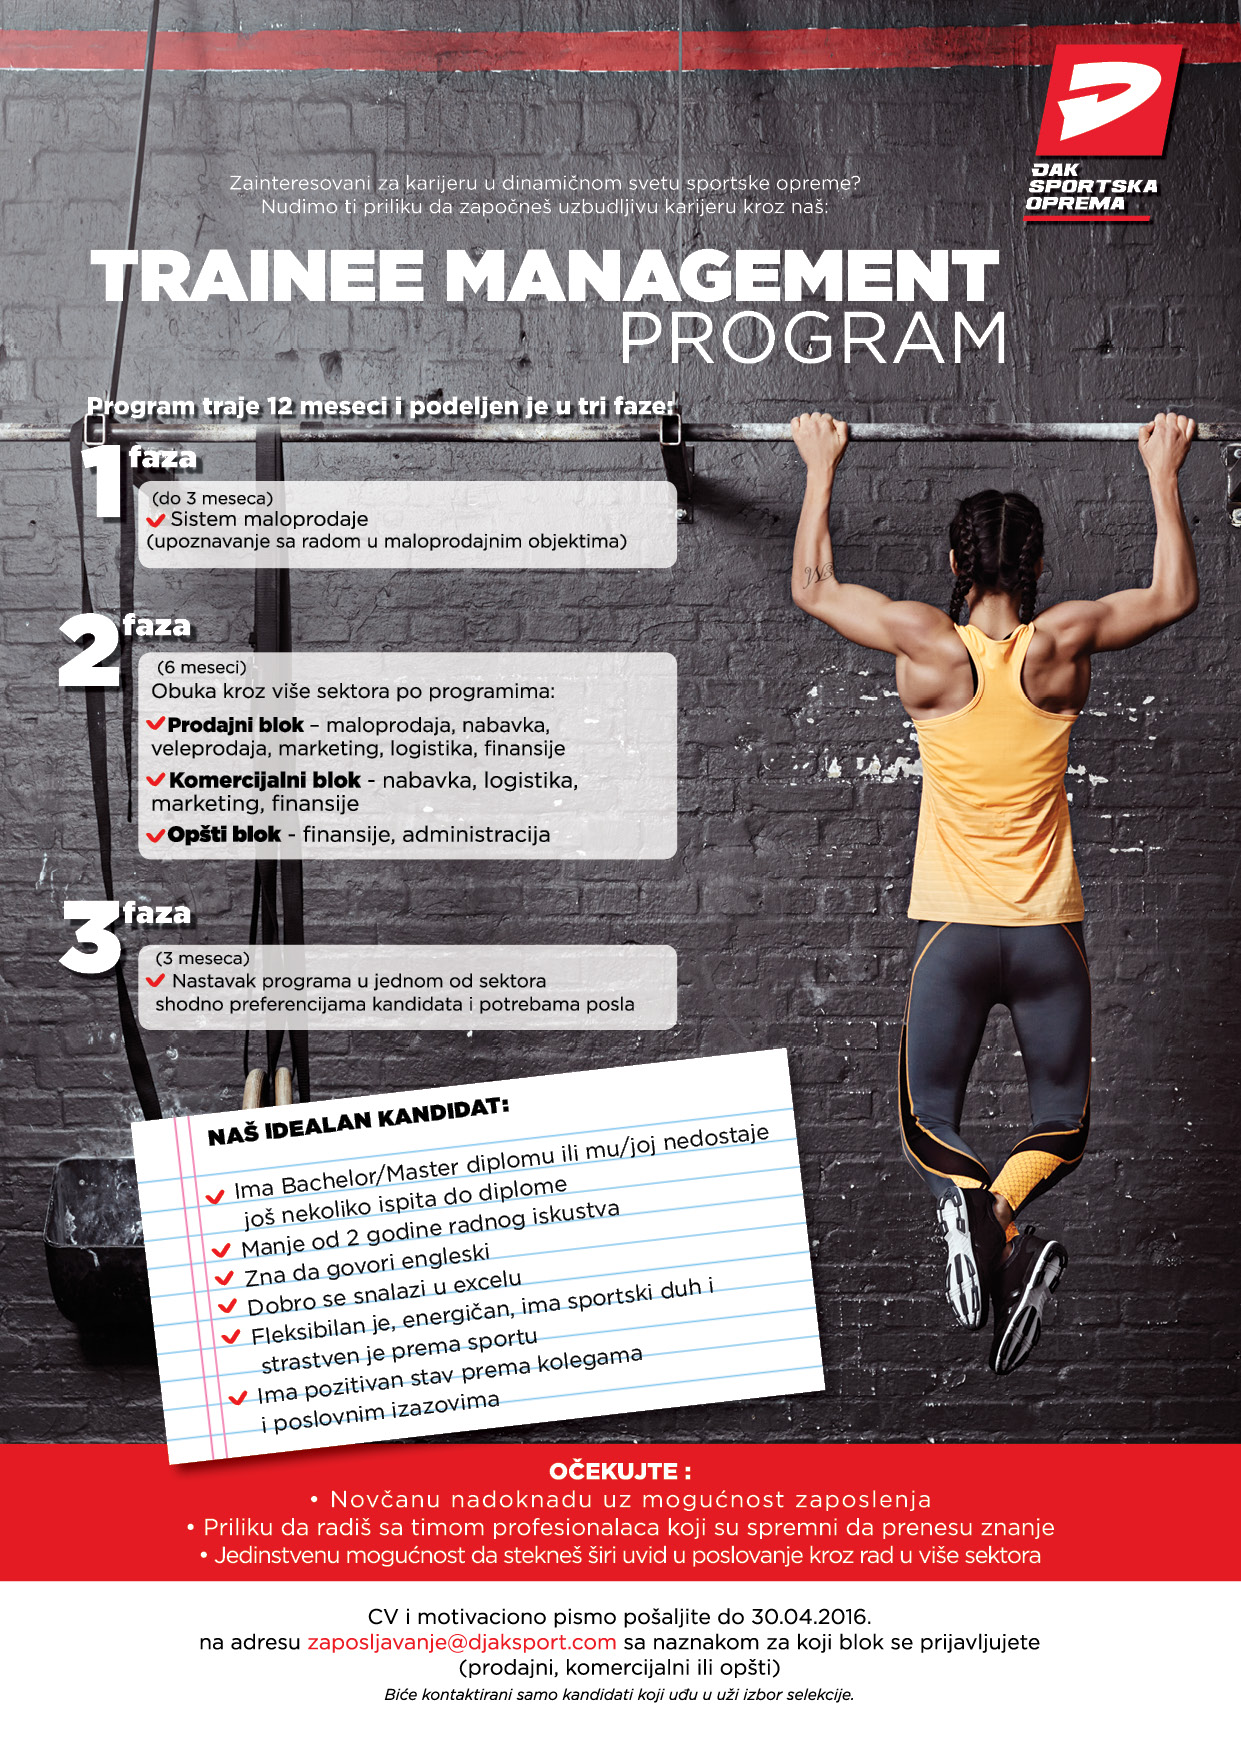 566598Trainee Managment Program